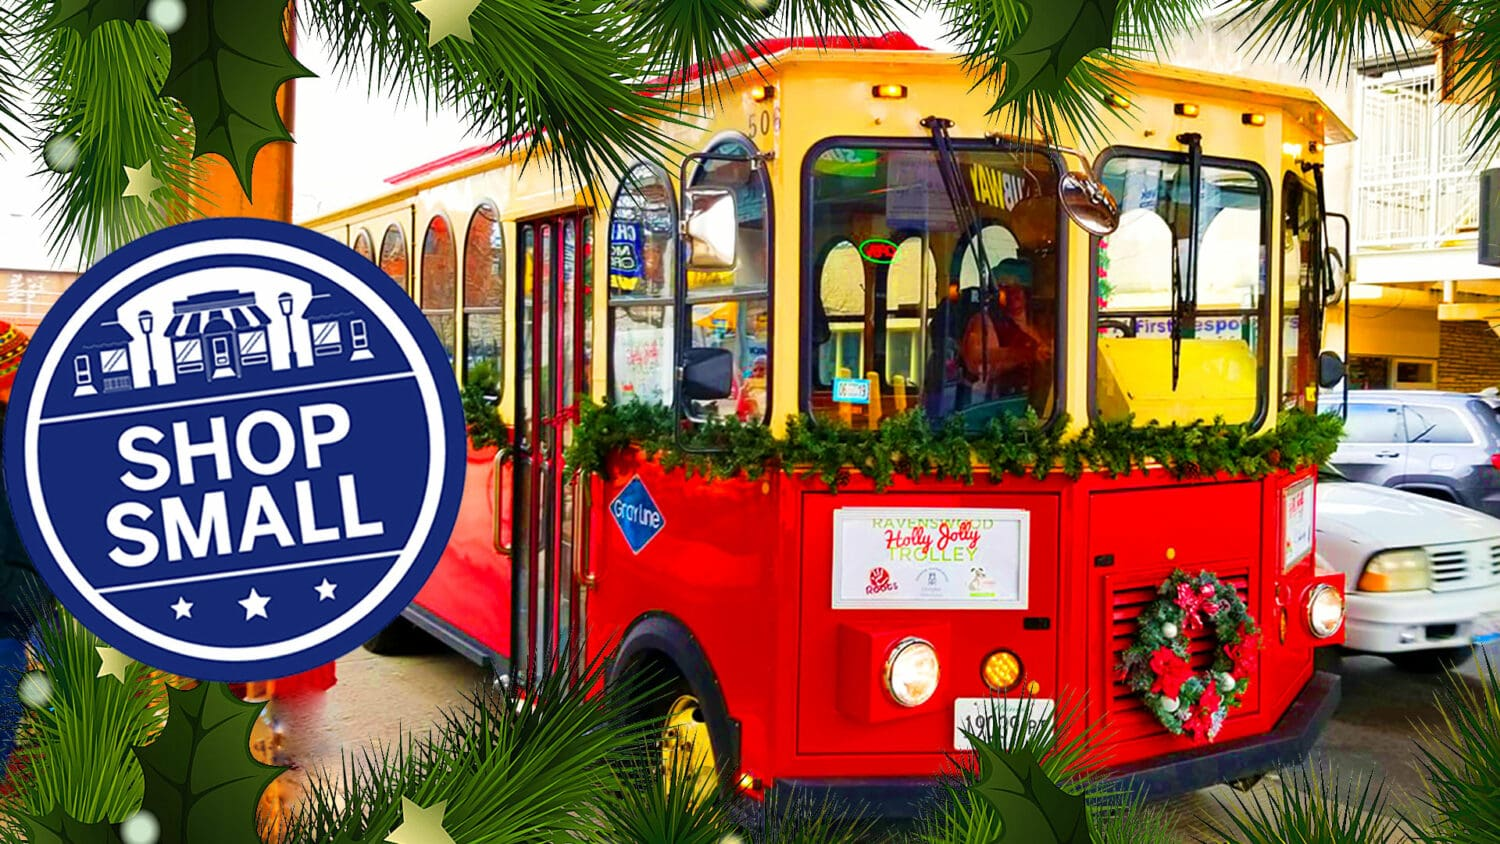 The Holly Jolly Trolley picks up holiday shoppers on Small Business Saturday in Ravenswood